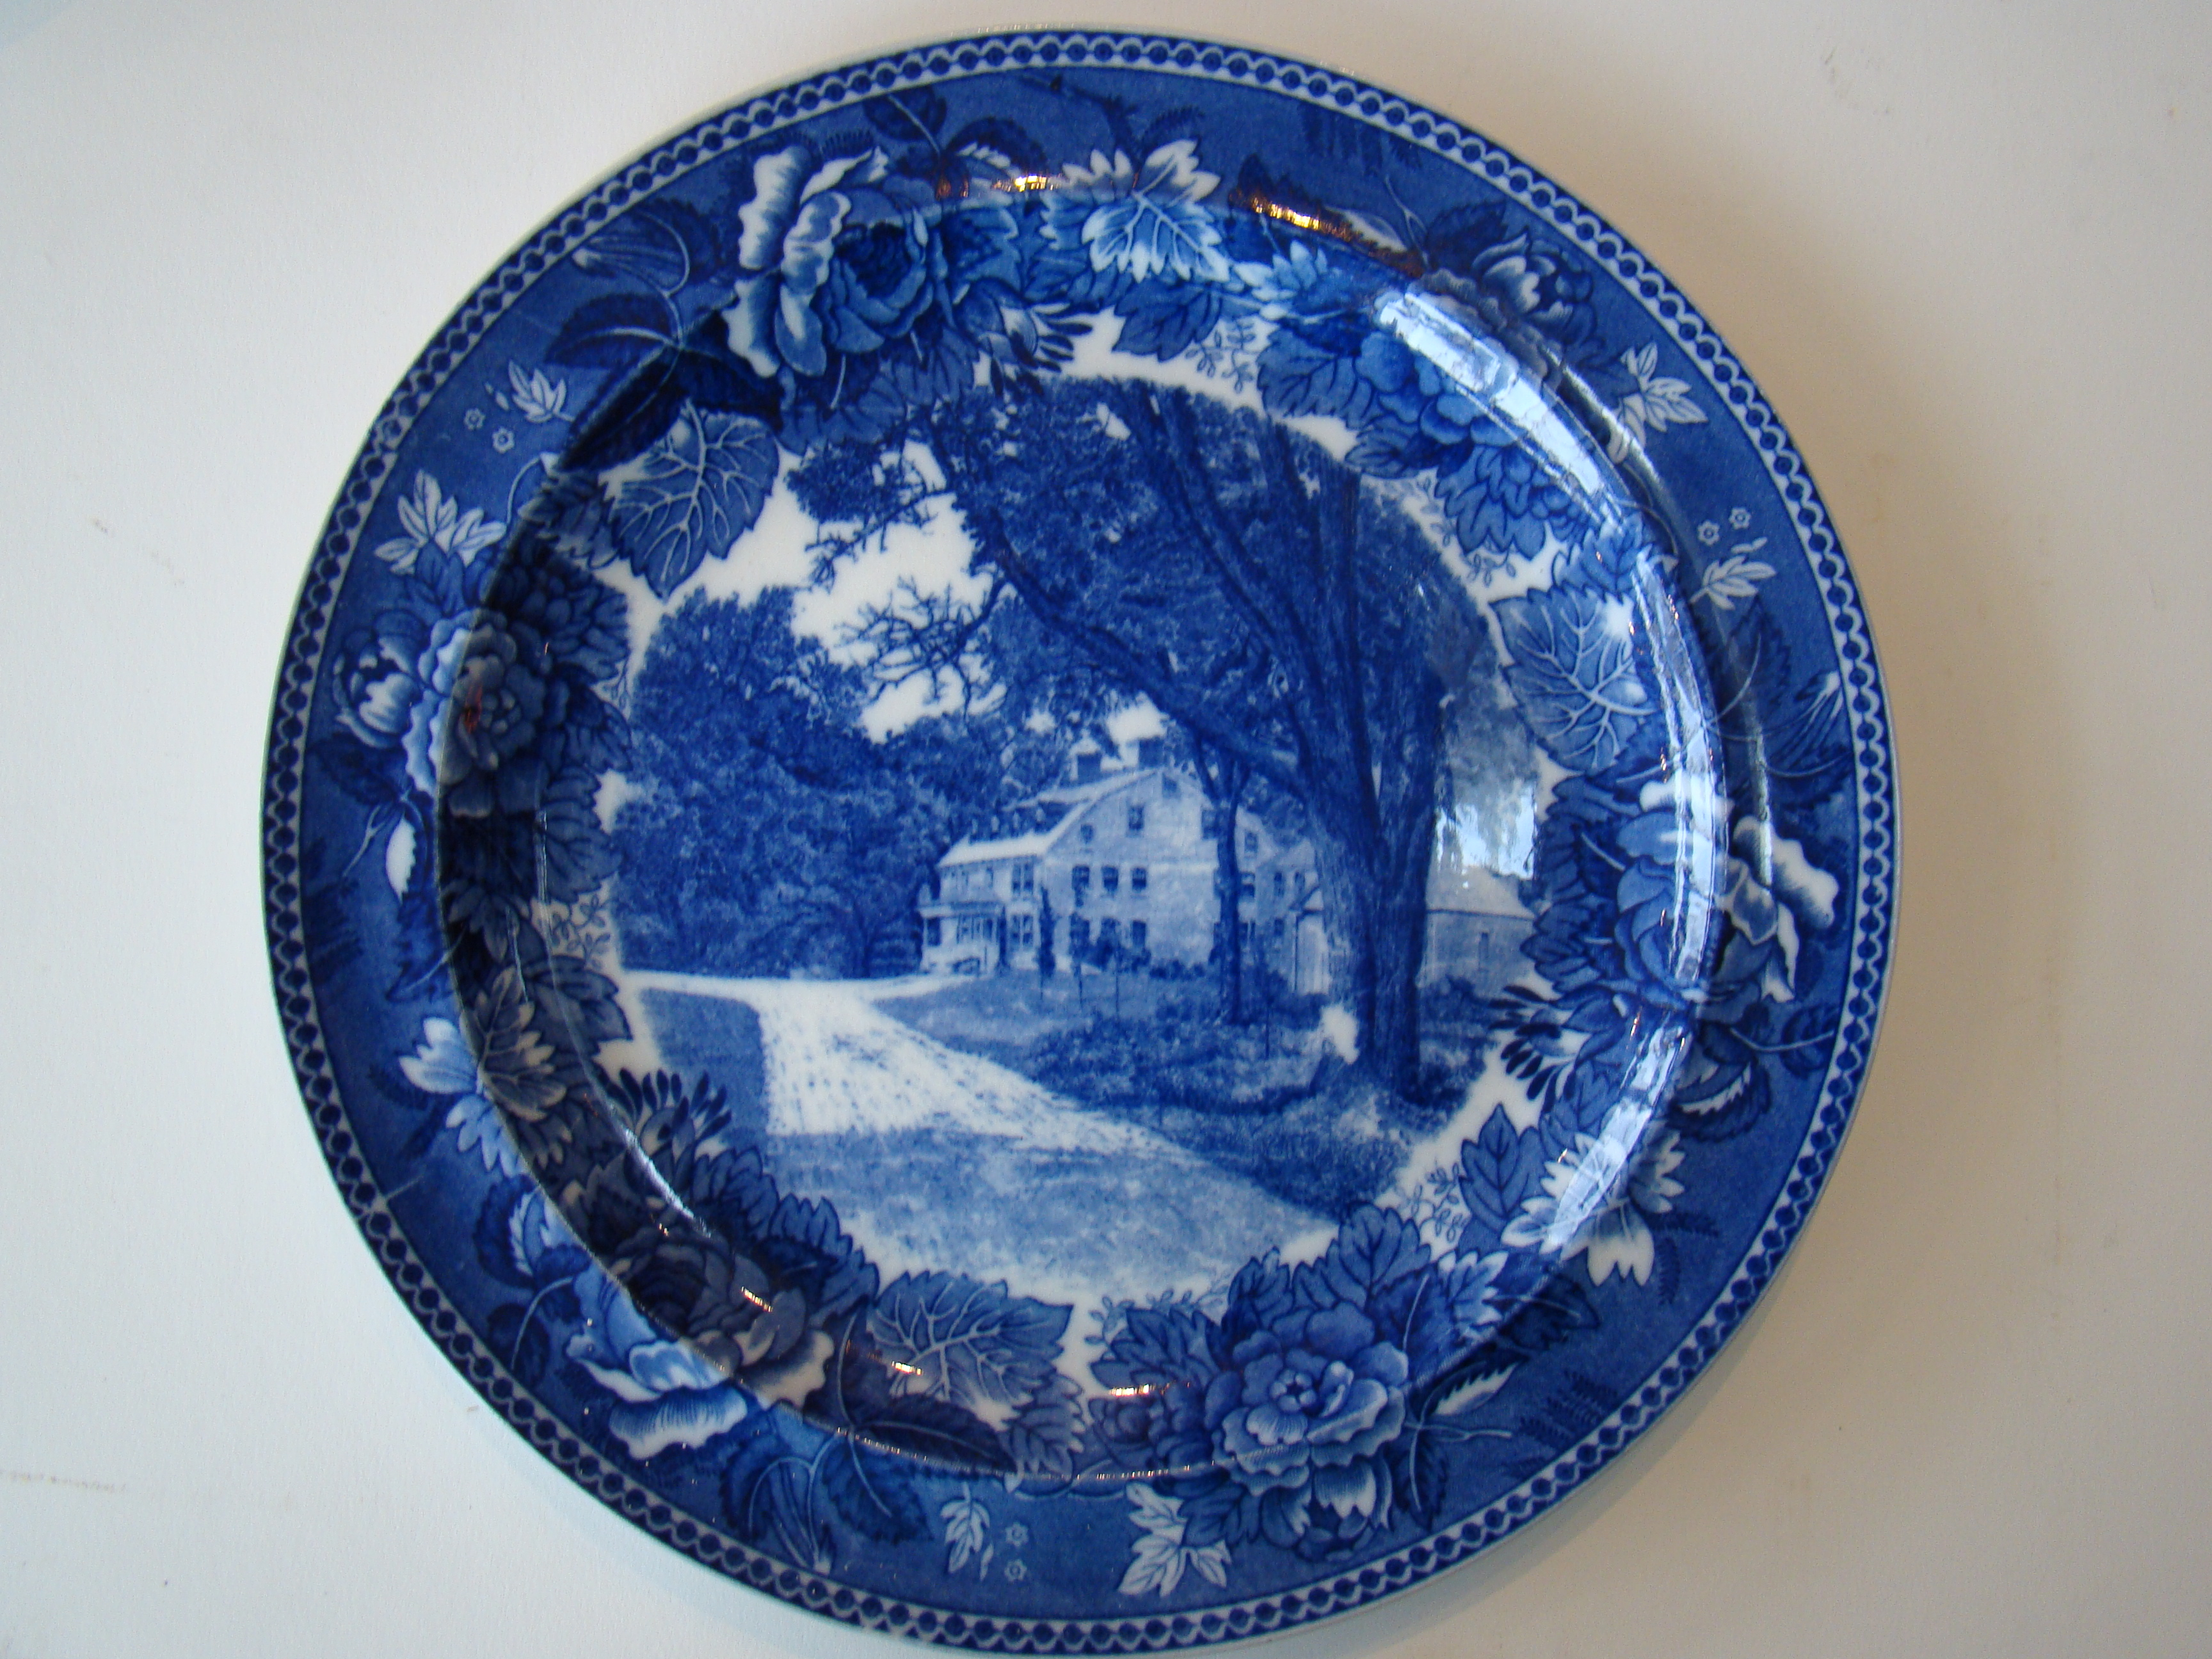 click to view detailed description of A fine late 19th century Wedgwood souvenir plate depicting Longfellows Wayside Inn in Sudbury, Mass